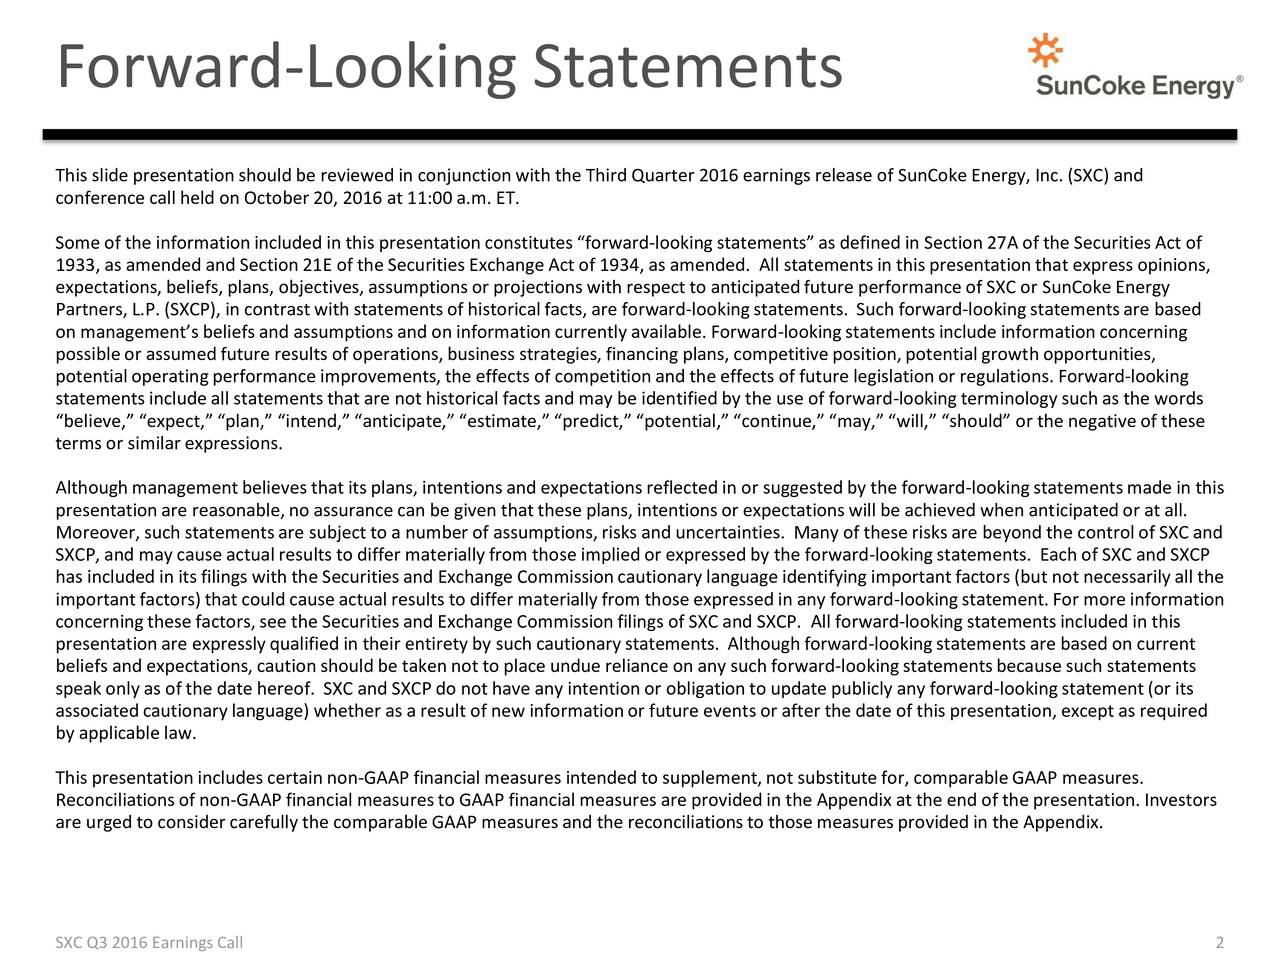 This slide presentationshould be reviewed in conjunctionwith the Third Quarter 2016 earnings release of SunCoke Energy, Inc. (SXC) and conference call held on October20, 2016 at 11:00 a.m. ET. Someof the informationincluded in this presentationconstitutesforward-lookingstatementsas defined in Section27A of the SecuritiesAct of 1933, as amended and Section21E of the Securities ExchangeAct of 1934, as amended. All statementsin this presentationthat express opinions, expectations,beliefs, plans, objectives,assumptionsor projectionswith respect to anticipatedfuture performanceof SXC or SunCoke Energy Partners,L.P. (SXCP), in contrastwith statementsof historicalfacts, are forward-lookingstatements. Such forward-lookingstatementsare based on managementsbeliefs and assumptionsand on informationcurrently available. Forward-lookingstatementsinclude informationconcerning possibleor assumedfuture results of operations,business strategies,financing plans, competitiveposition,potentialgrowthopportunities, potentialoperatingperformance improvements,the effects of competitionand the effects of future legislationor regulations.Forward-looking statementsinclude all statementsthat are nothistoricalfacts and may be identified by the use of forward-lookingterminology such as the words believe, expect,plan, intend, anticipate, estimate, predict, potential,continue,may, will, should or the negativeof these termsor similarexpressions. Althoughmanagementbelieves that its plans, intentionsand expectationsreflected in or suggestedby the forward-lookingstatementsmade in this presentationare reasonable,no assurance can be given thatthese plans, intentionsor expectationswill be achieved when anticipatedor at all. Moreover,such statementsare subjectto a number of assumptions,risks and uncertainties. Many of these risks are beyond the controlof SXC and SXCP, and may cause actual results to differ materiallyfrom those impliedor expressed by the forward-lookingstatements. Each of SXC and SXCP has i